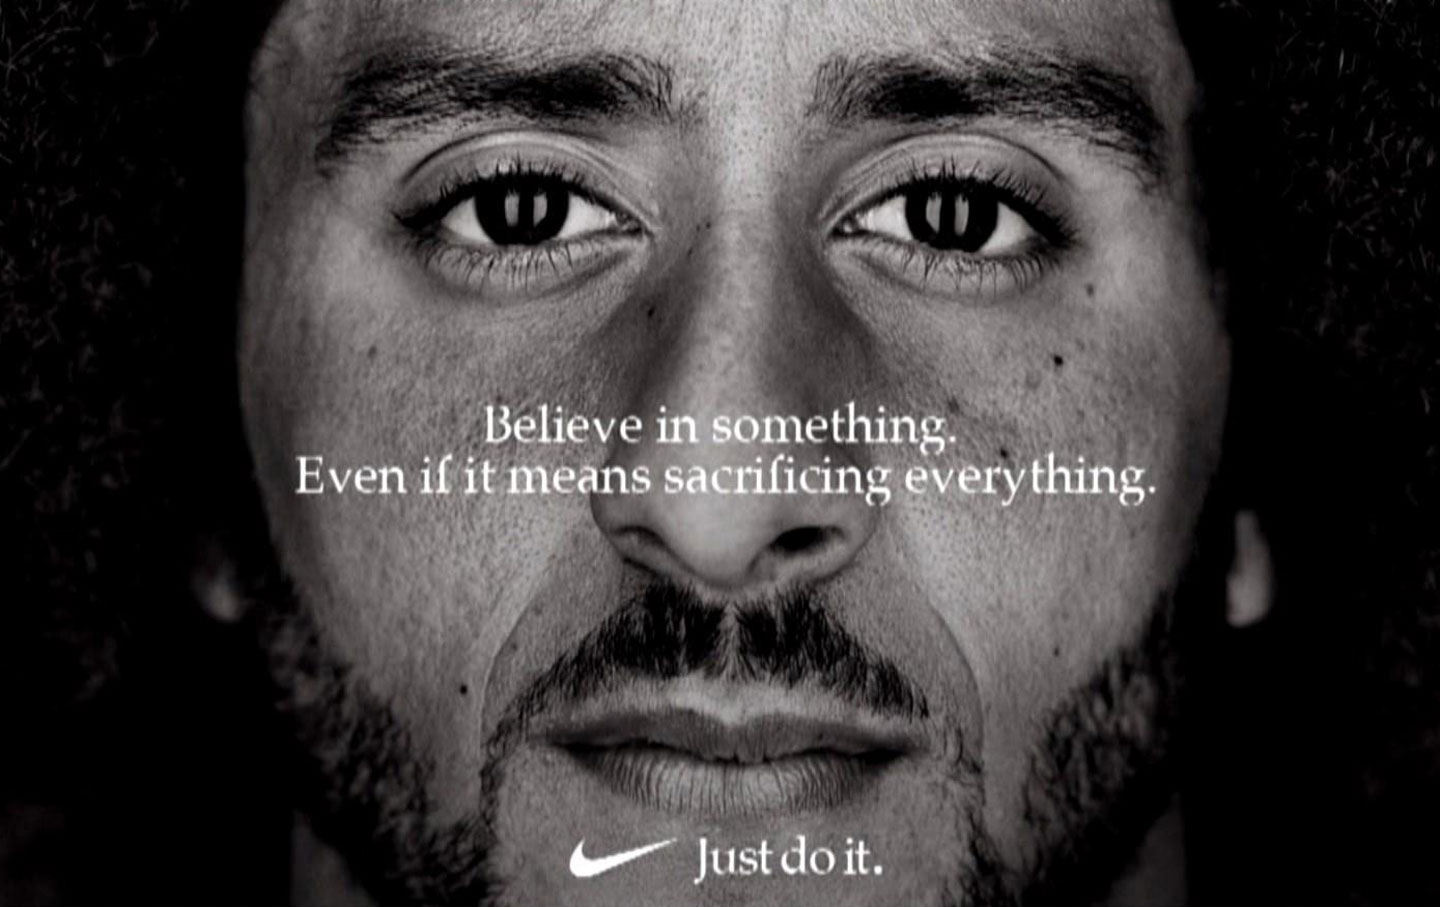 Nike's ad campaign featuring Colin Kaepernick has drawn criticism from those who don't support the athlete's protests.